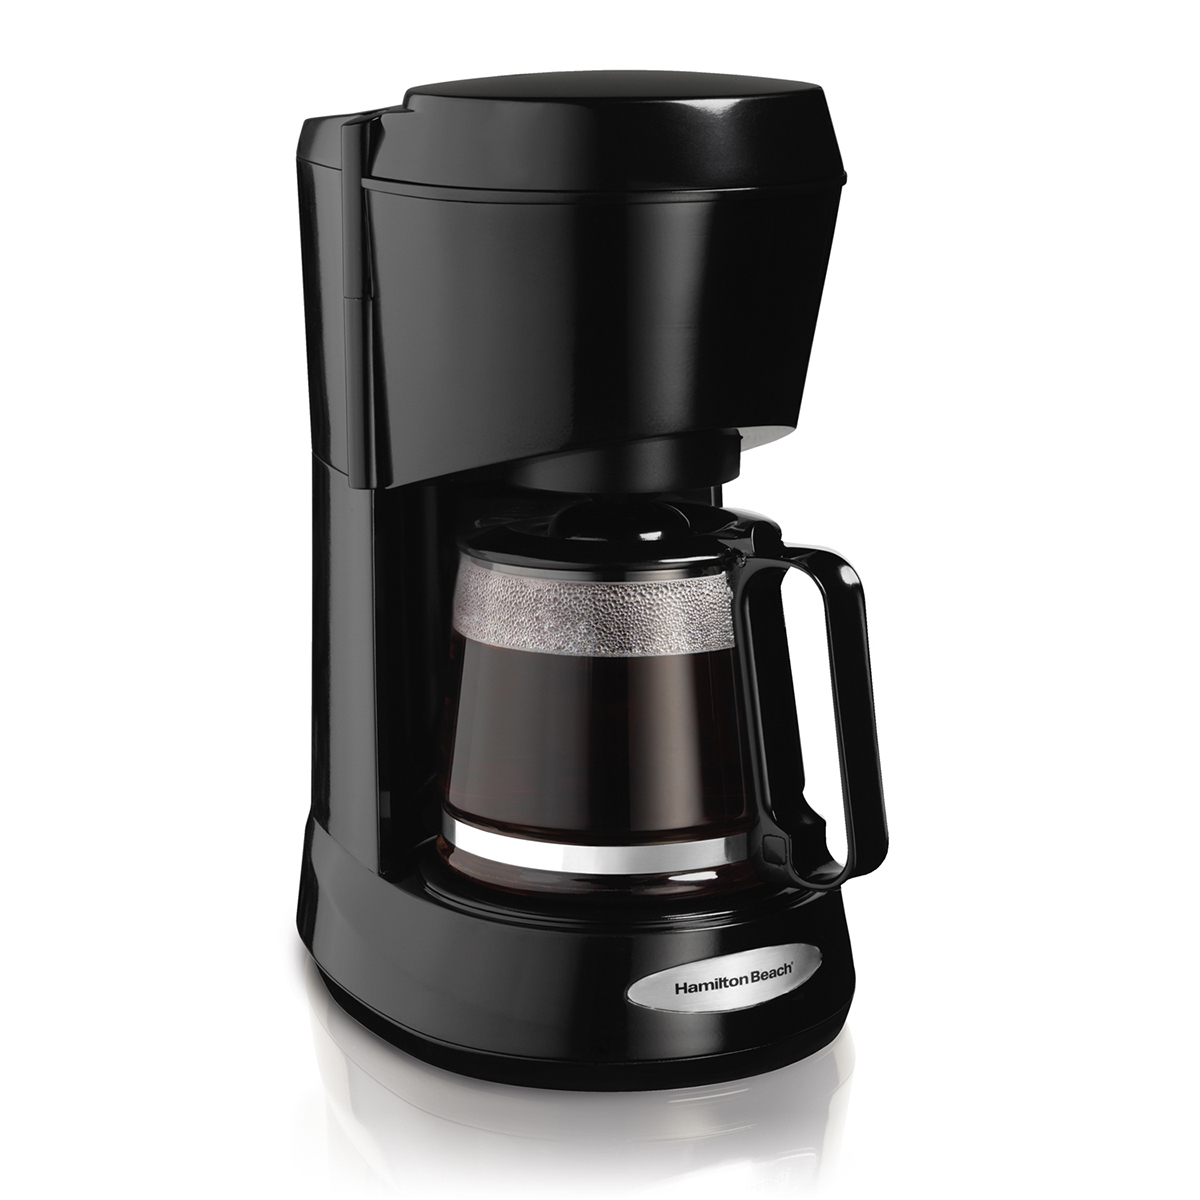 5 Cup Coffee Maker (48136)